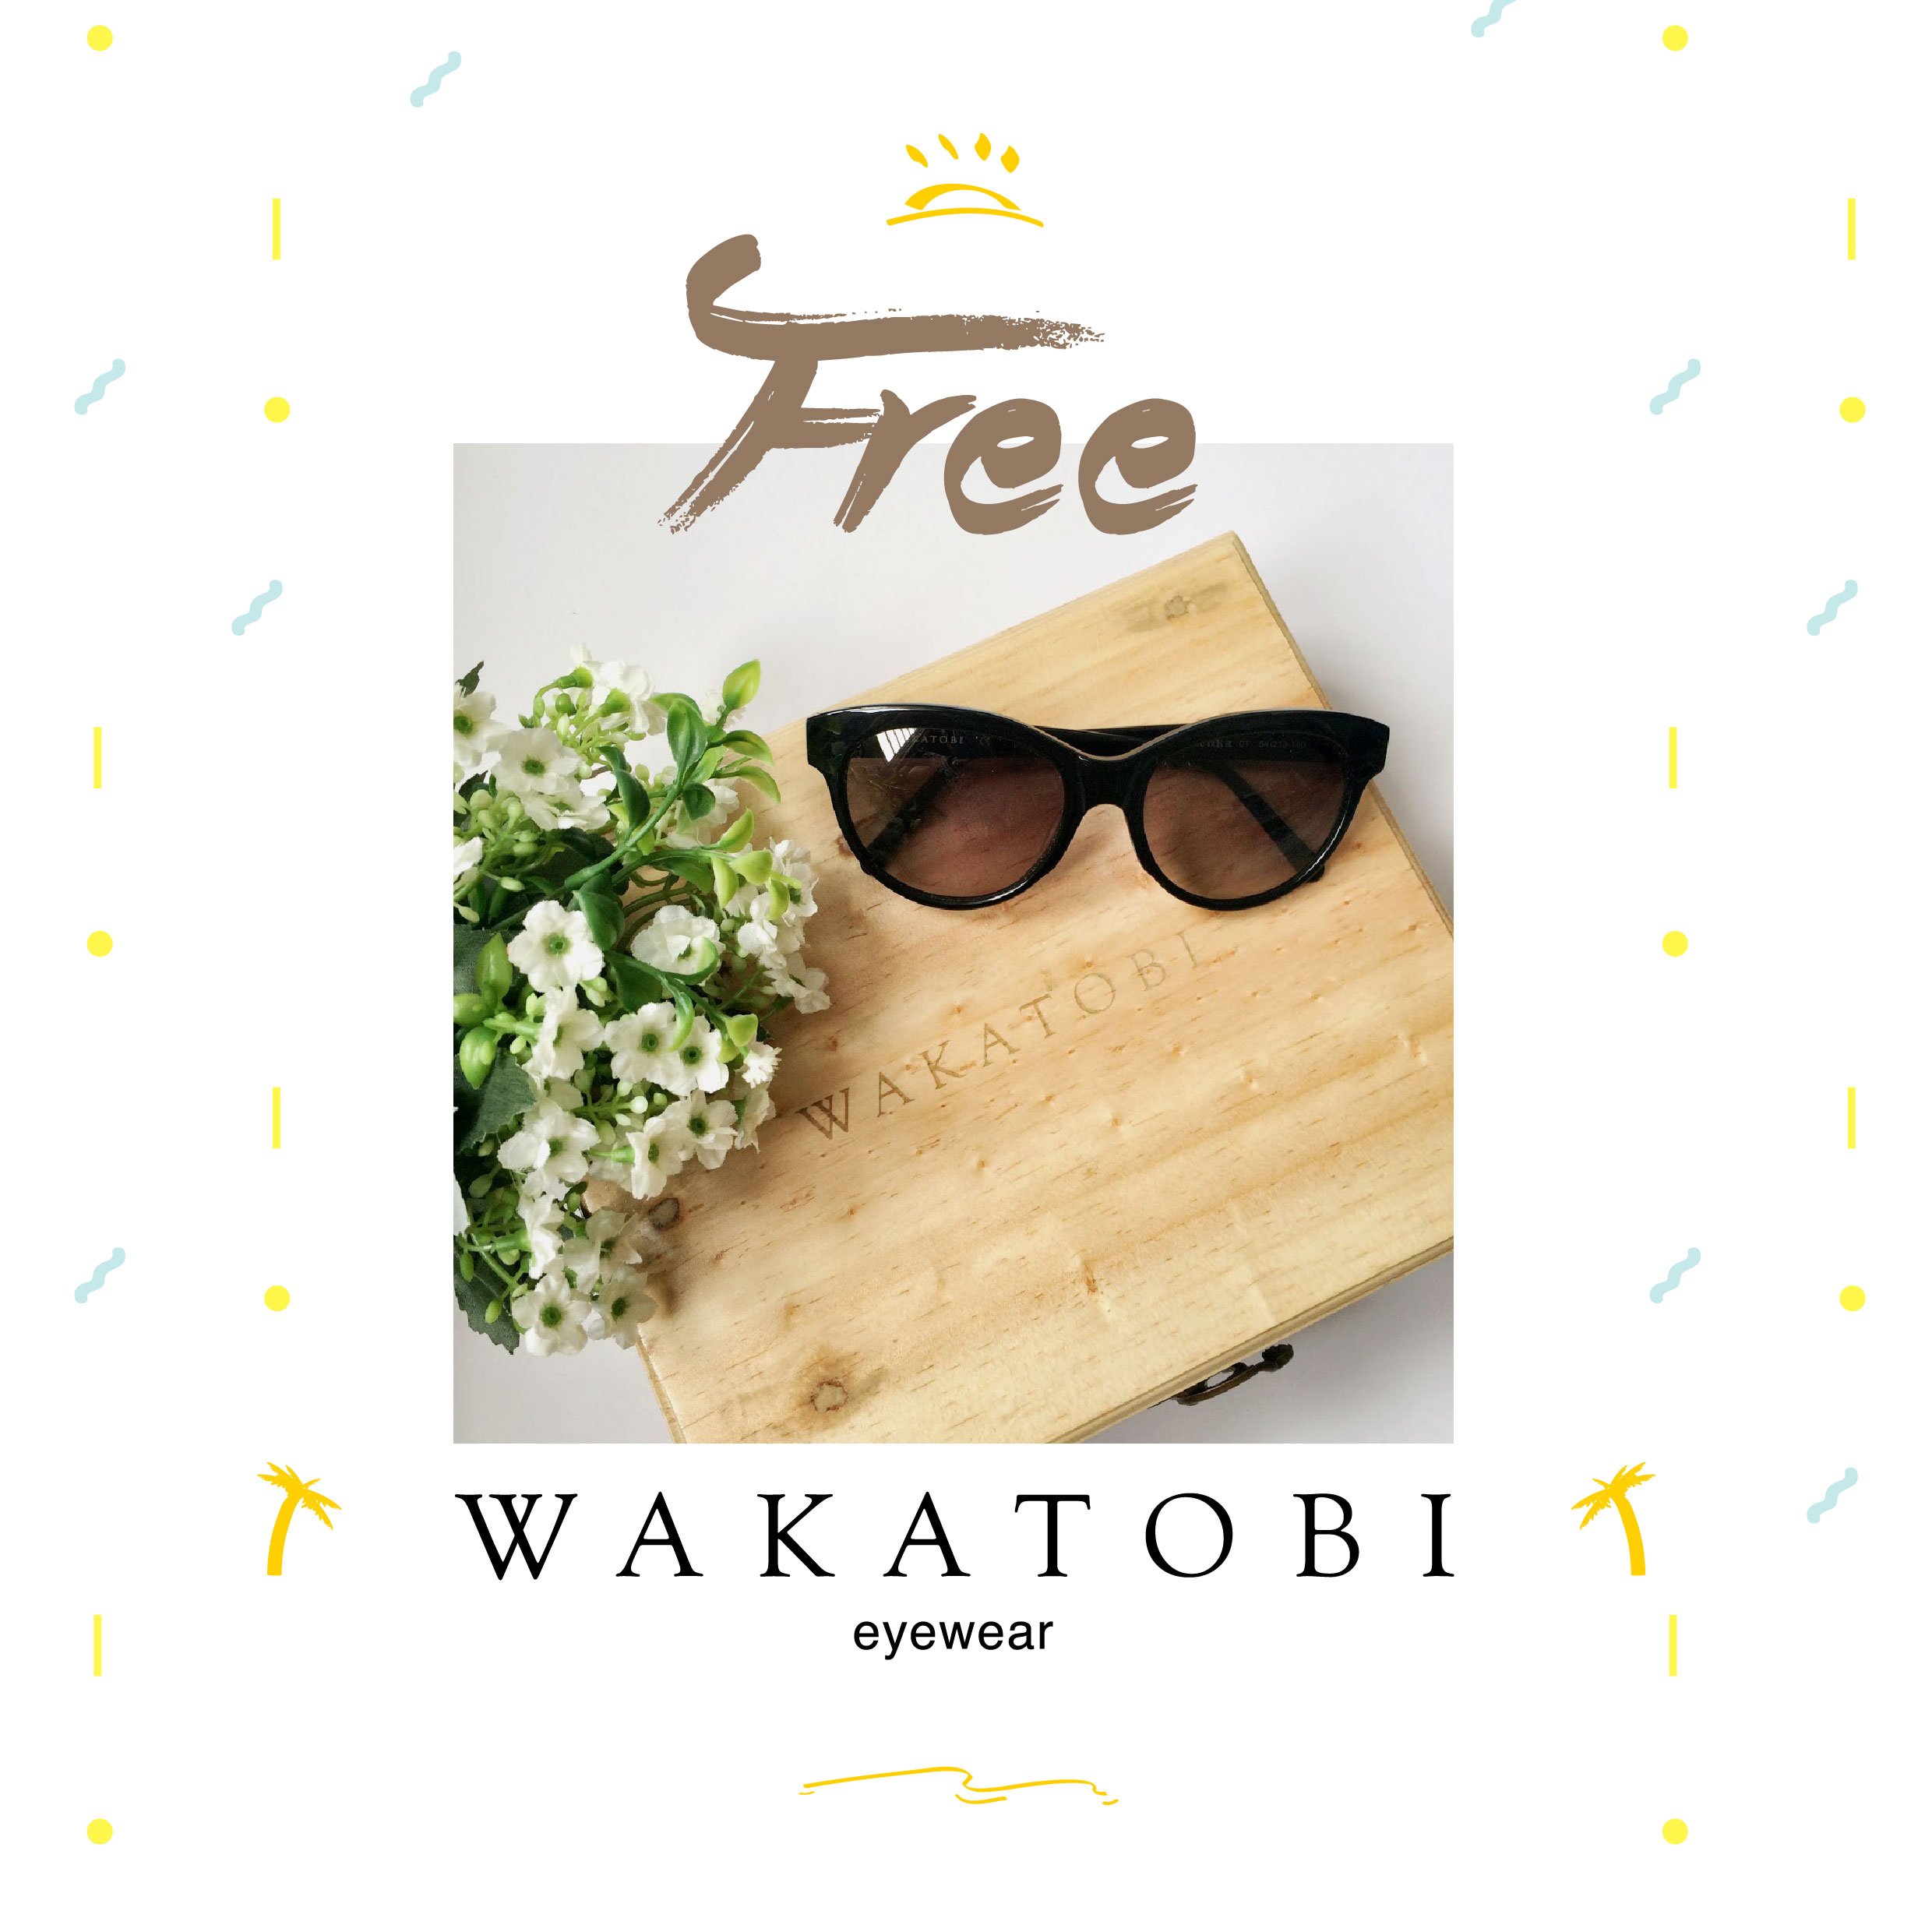 Get FREE a set of Wakatobi glasses for Couple with Wooden Box!